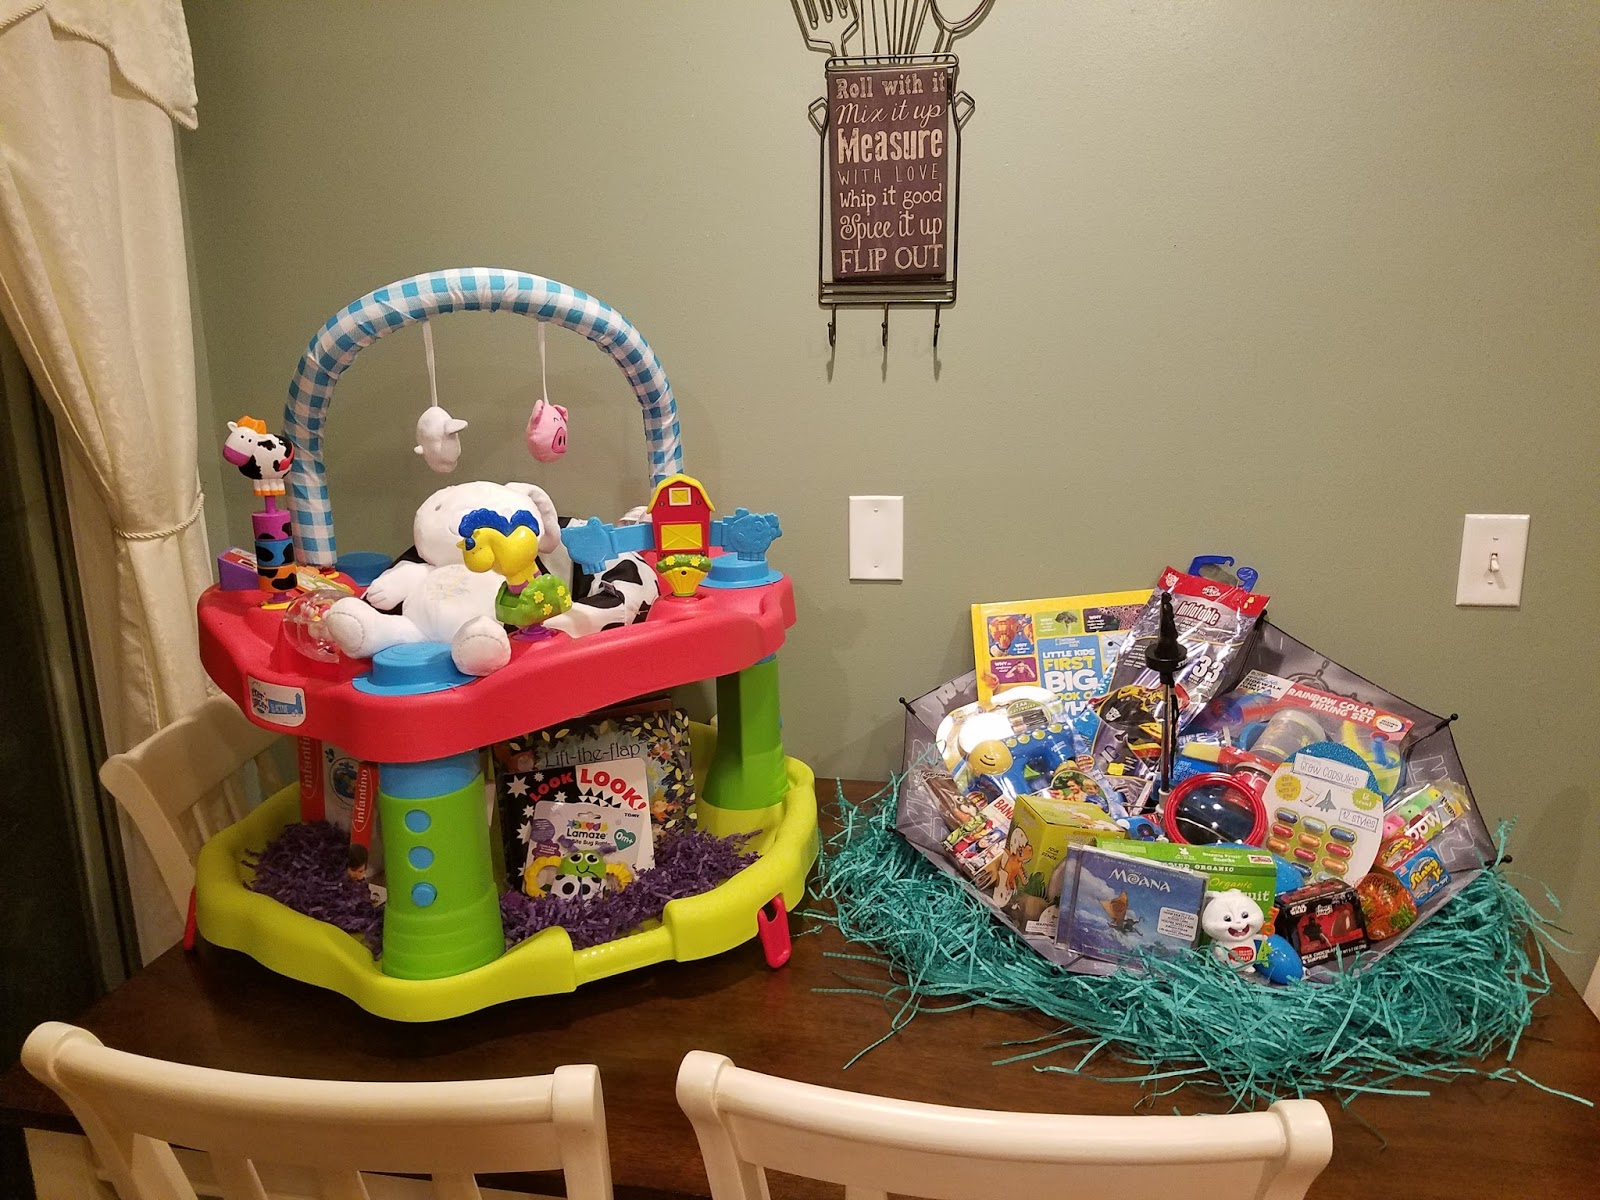 Easter basket ideas reclaiming my sanity the evenflo exersaucer moovin groovin bought at toys r us negle Images